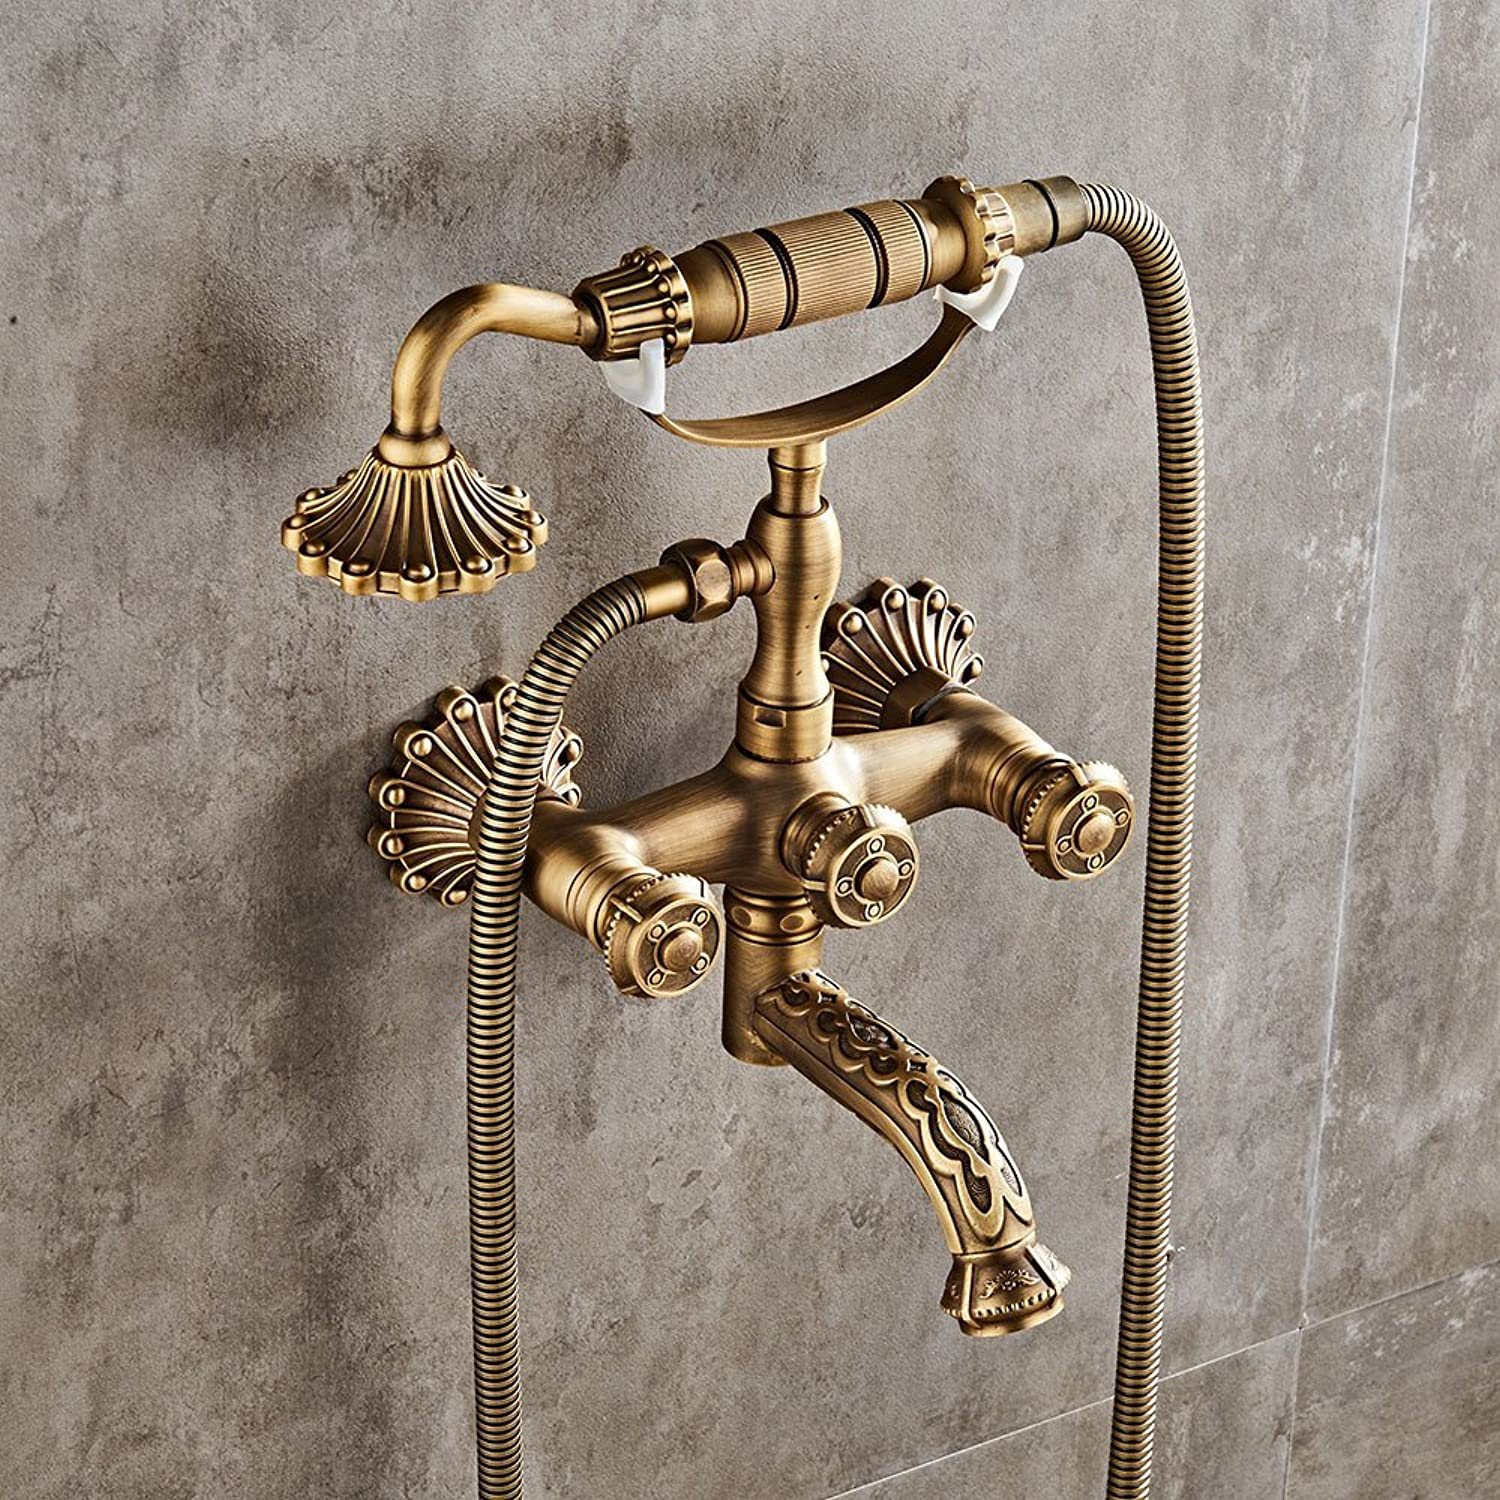 Kitchen Sink Taps Bathroom Sink Taps Antique Simple Shower Bathroom In-Wall Shower Set Bathtub Hot And Cold Faucet